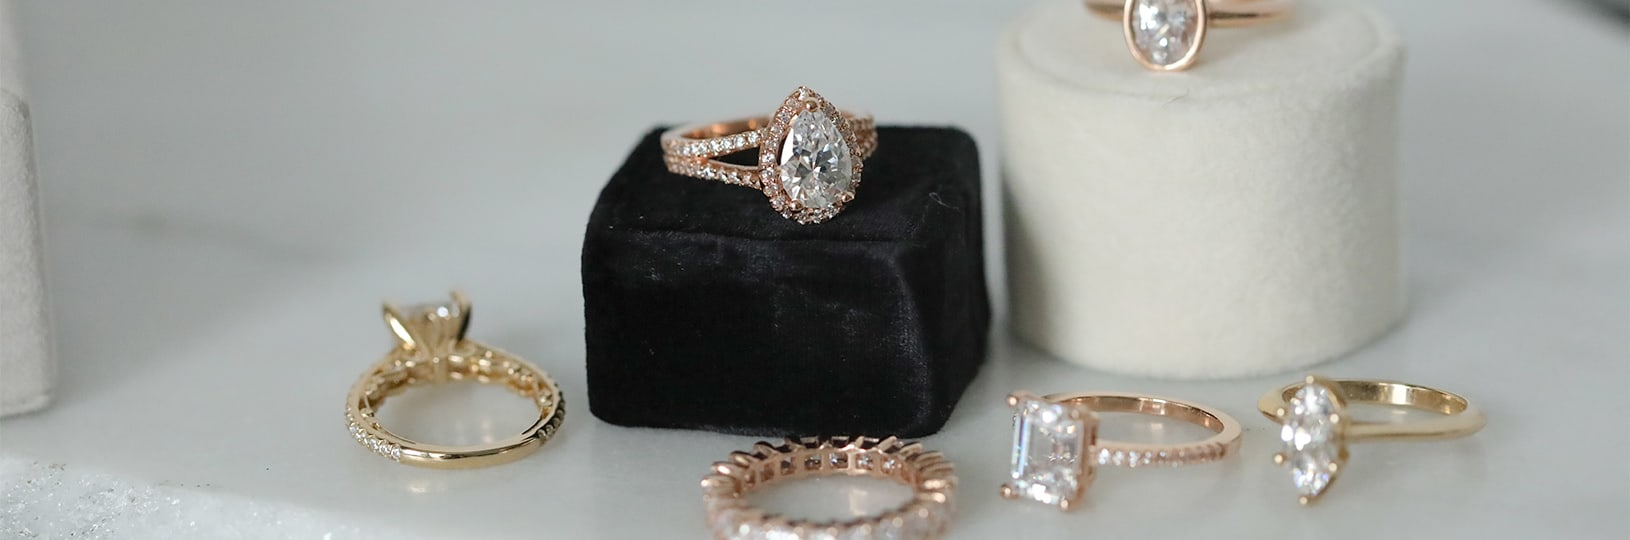 Variety of online engagement rings.